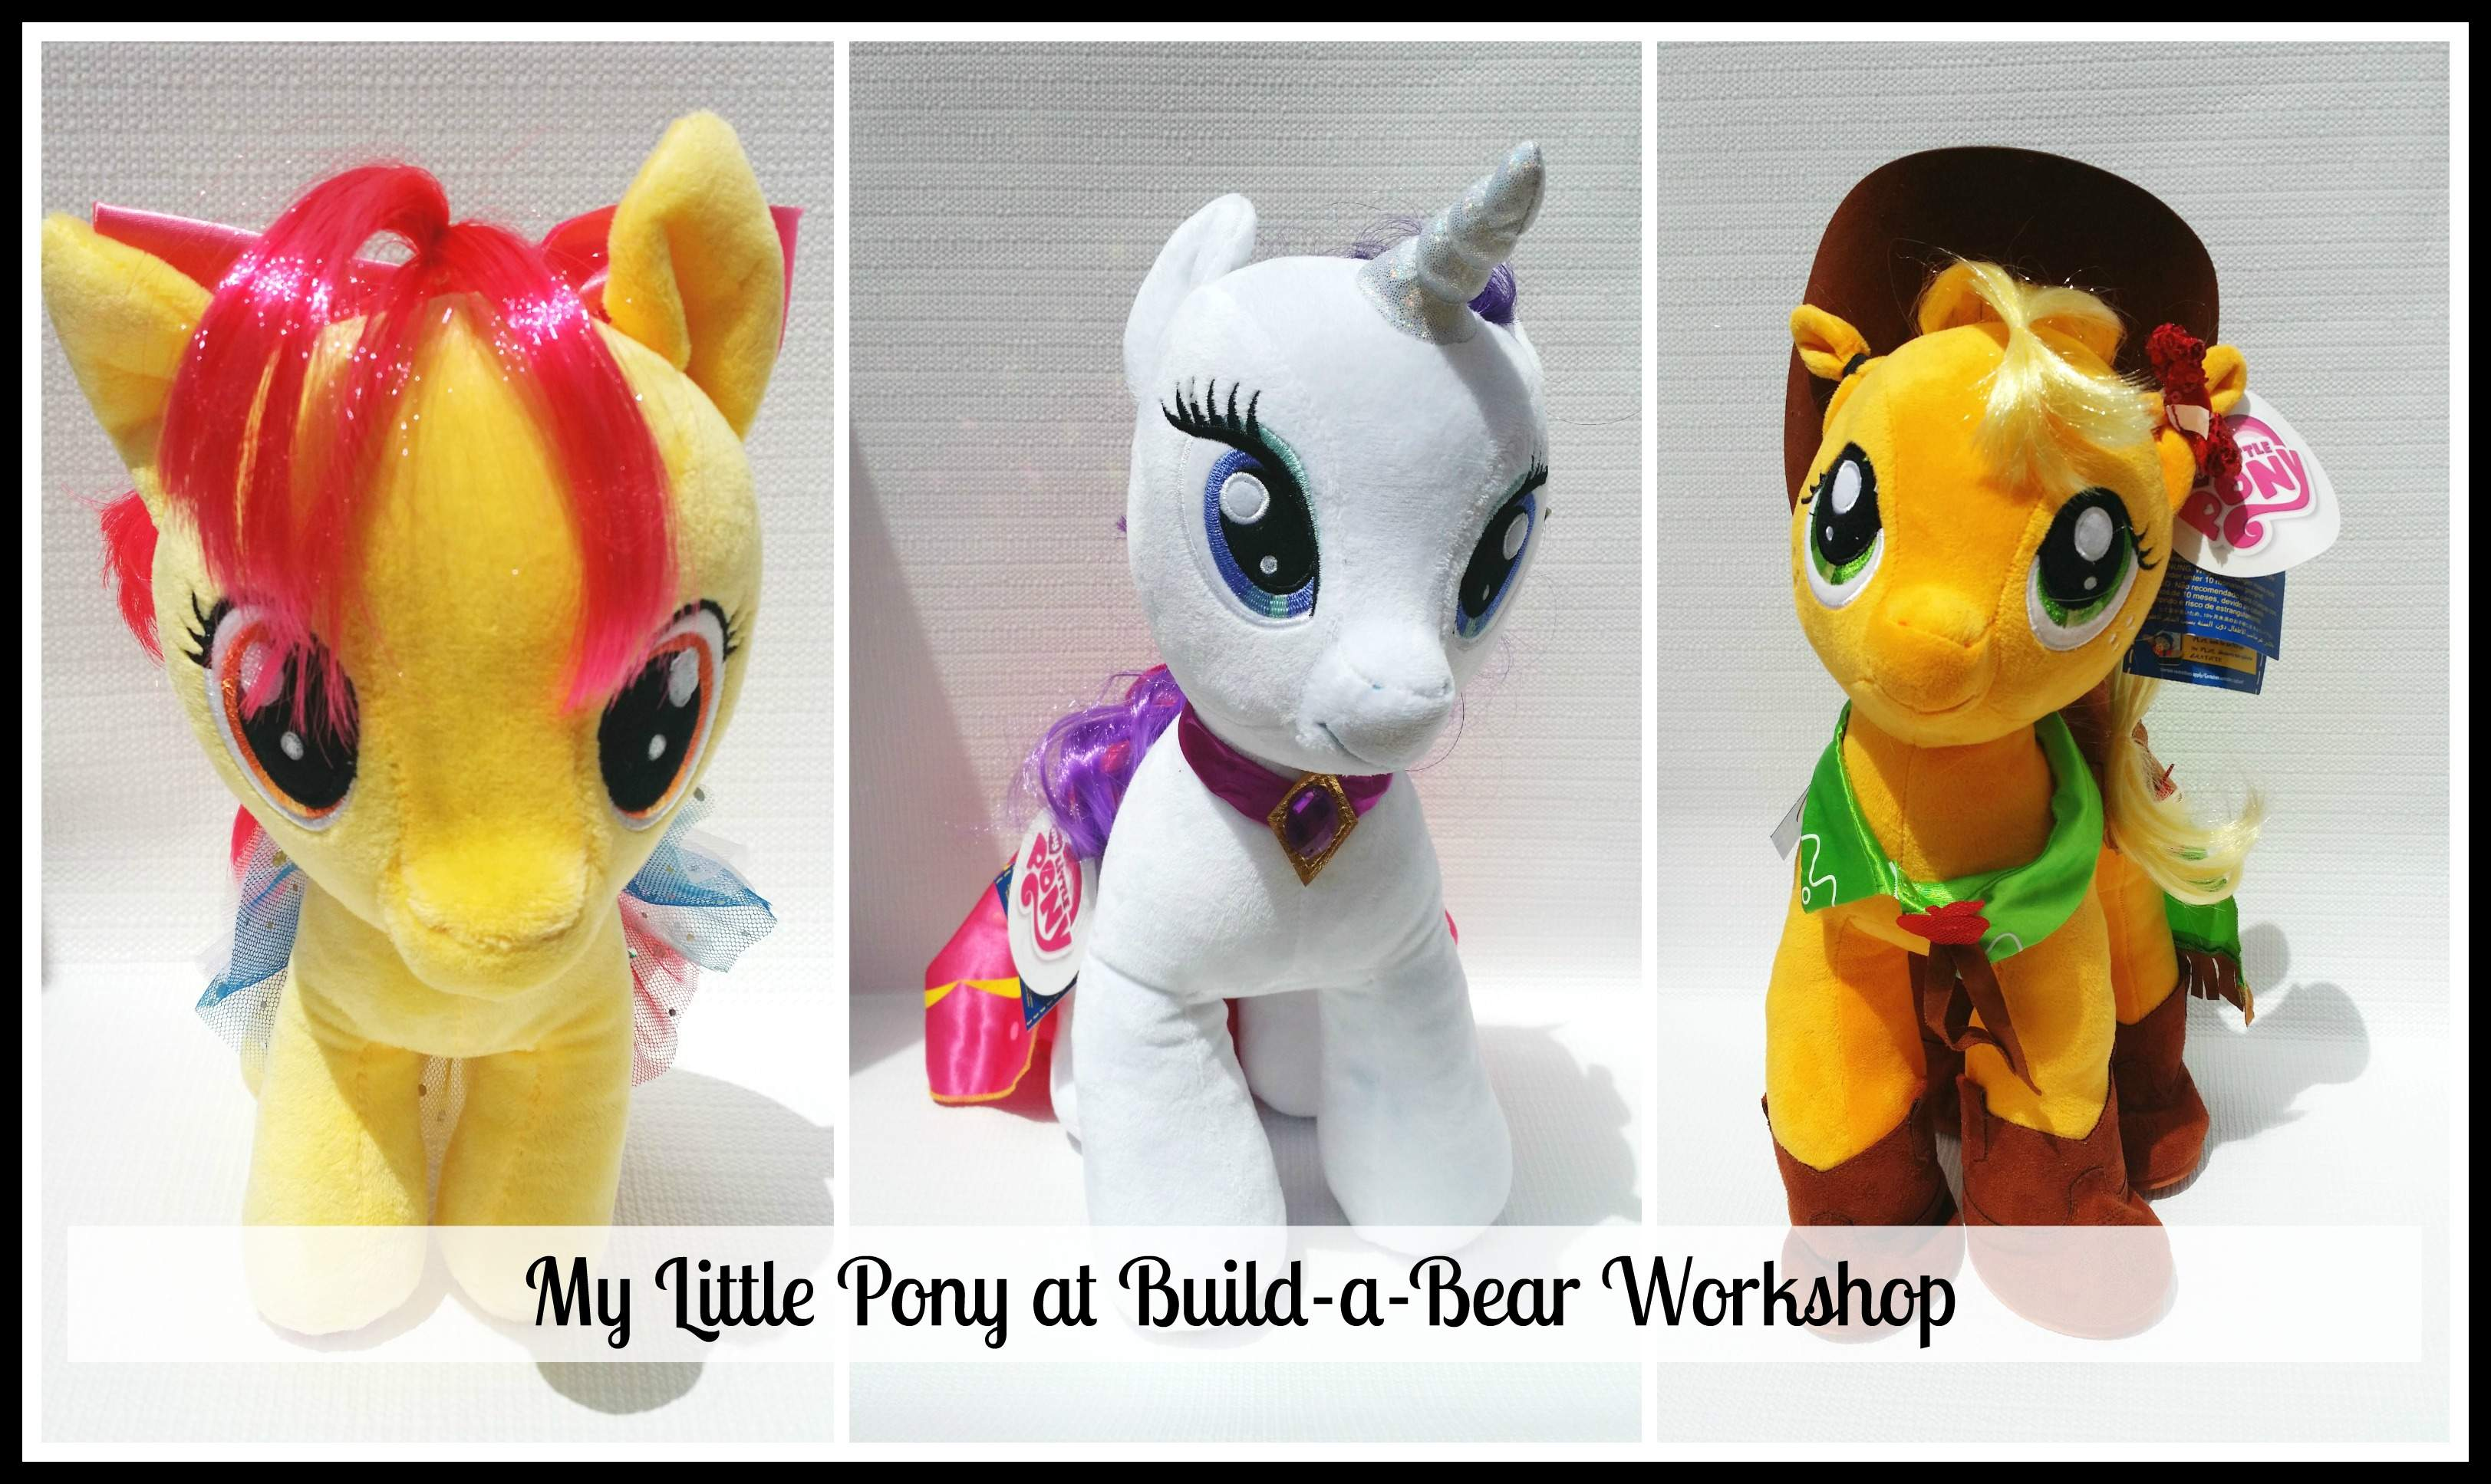 f97f617ded4 Build-a-Bear Workshop has added to its My Little Pony Collection with 4 new  ponies. Introducing…Applejack